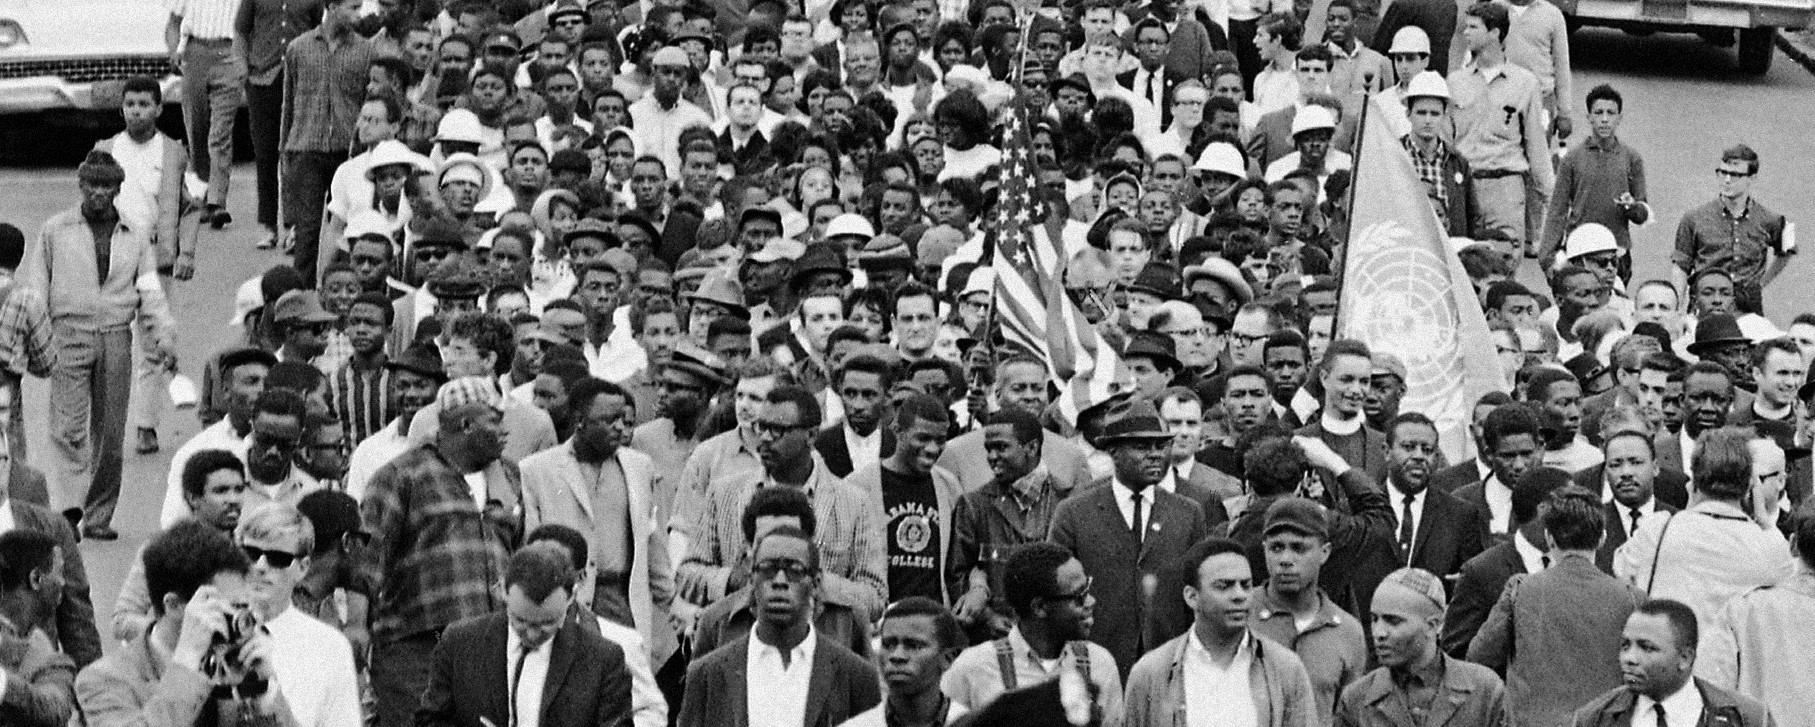 an analysis of the topic of civil disobedience and racism in the united states of america Internalized racism theory history of racism and movements civil disobedience the movement 2014 the state of civil rights education in the united states.